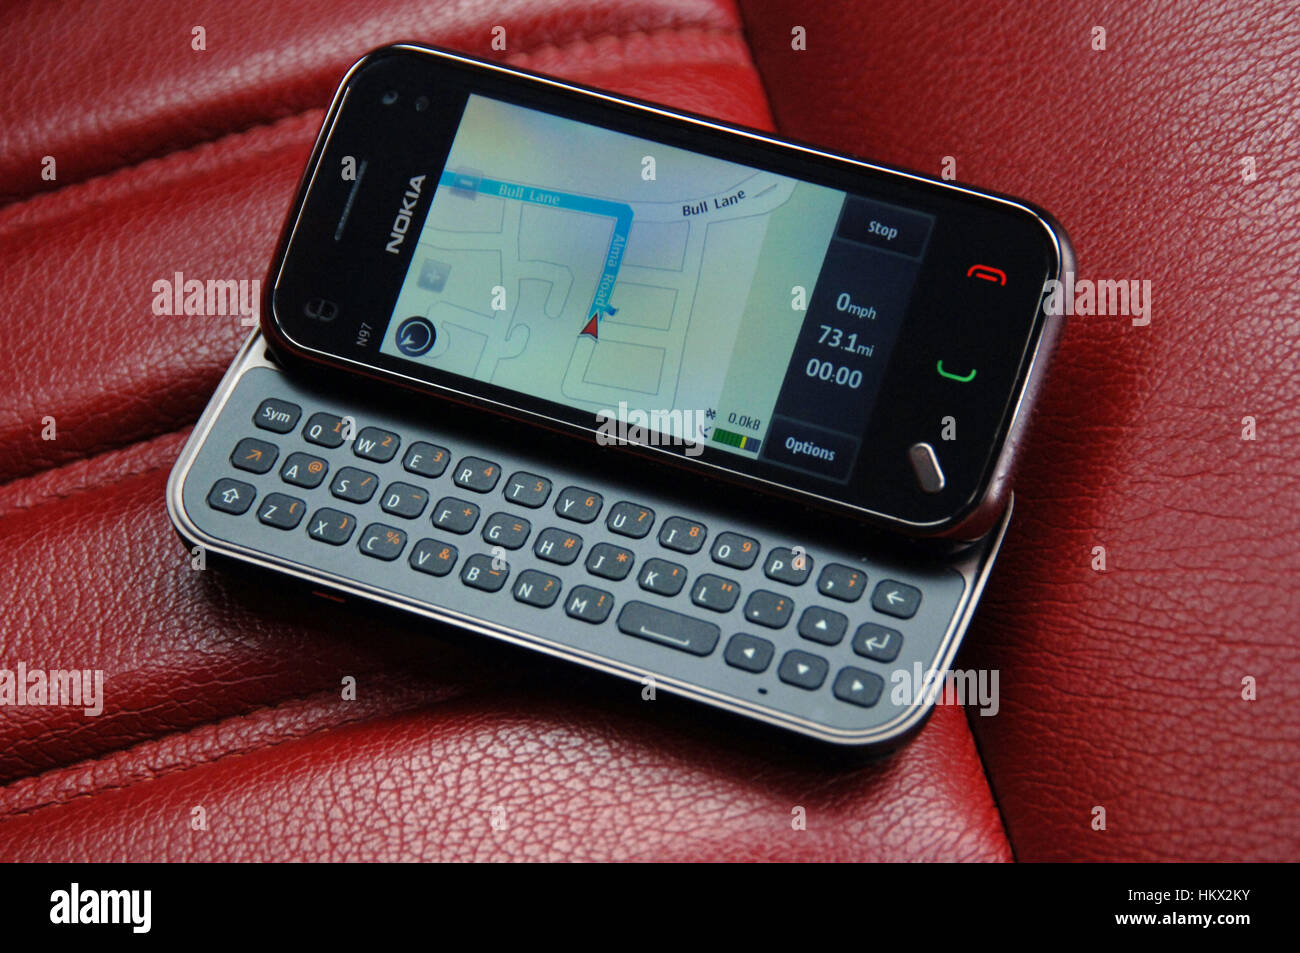 Sat nav on a Nokia mobile phone in 2010 - Stock Image